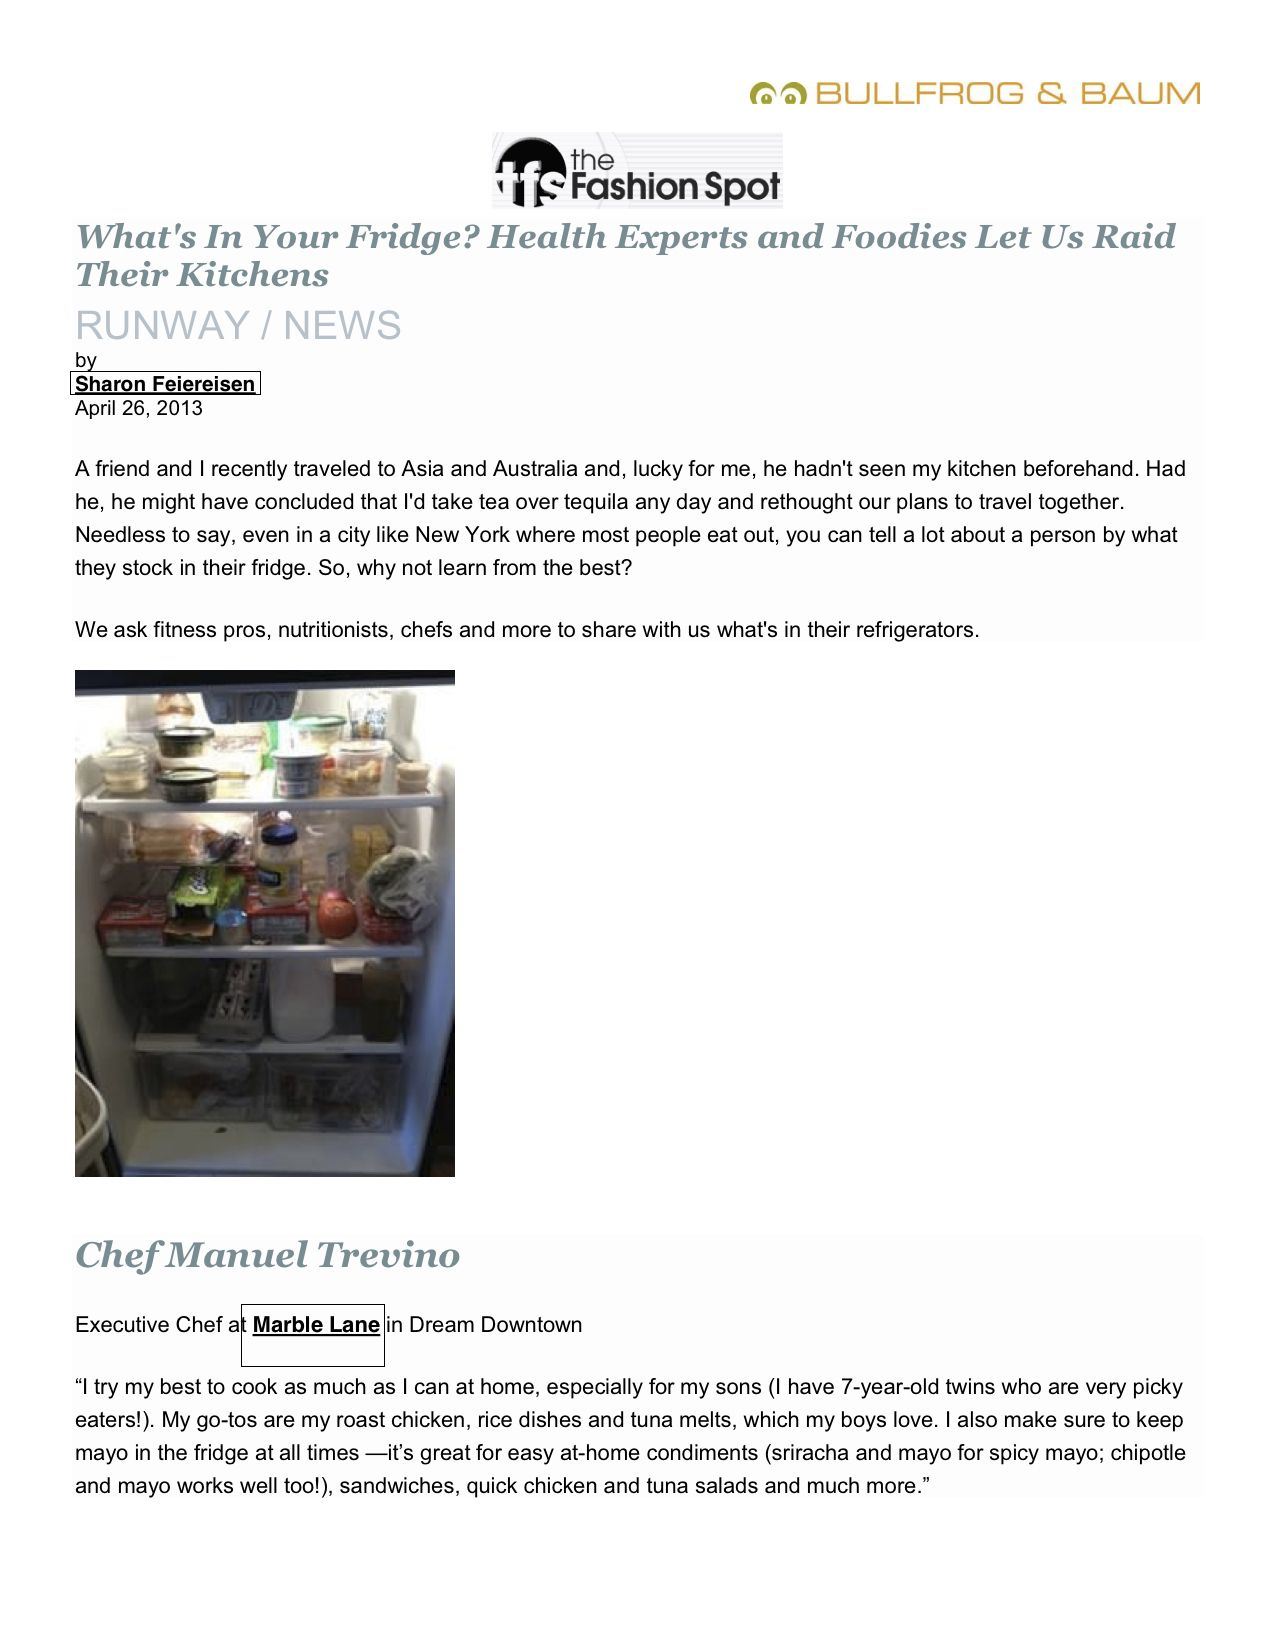 The Fashion Spot 2013  What's in Your Fridge? Health Experts and Foodies Let Us Raid Their Kitchens  Marble Lane at Dream Downtown, NYC  www.marblelane.com